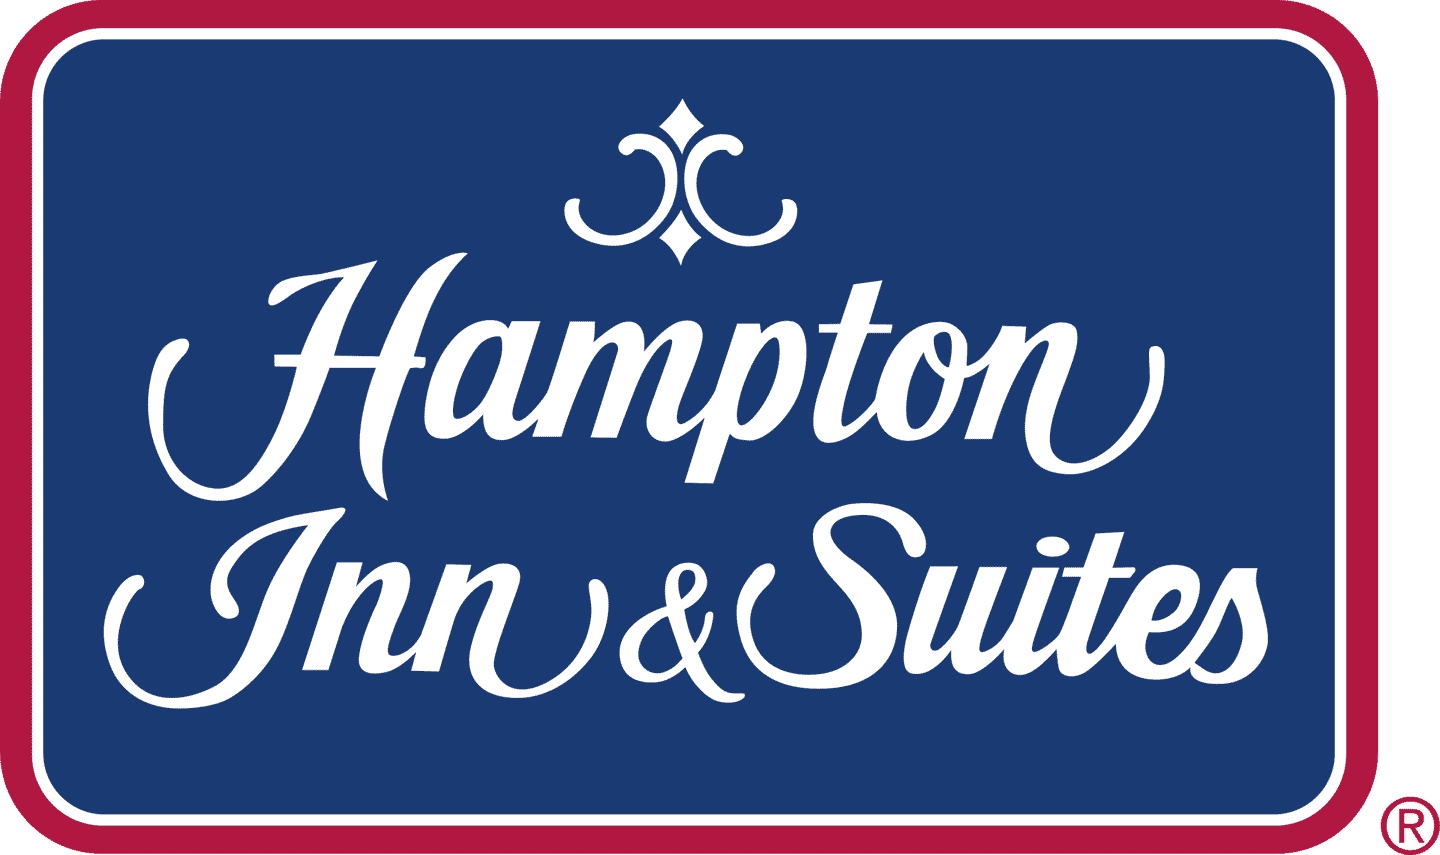 Hampton Inn & Suites discounted room rates 10-20% off